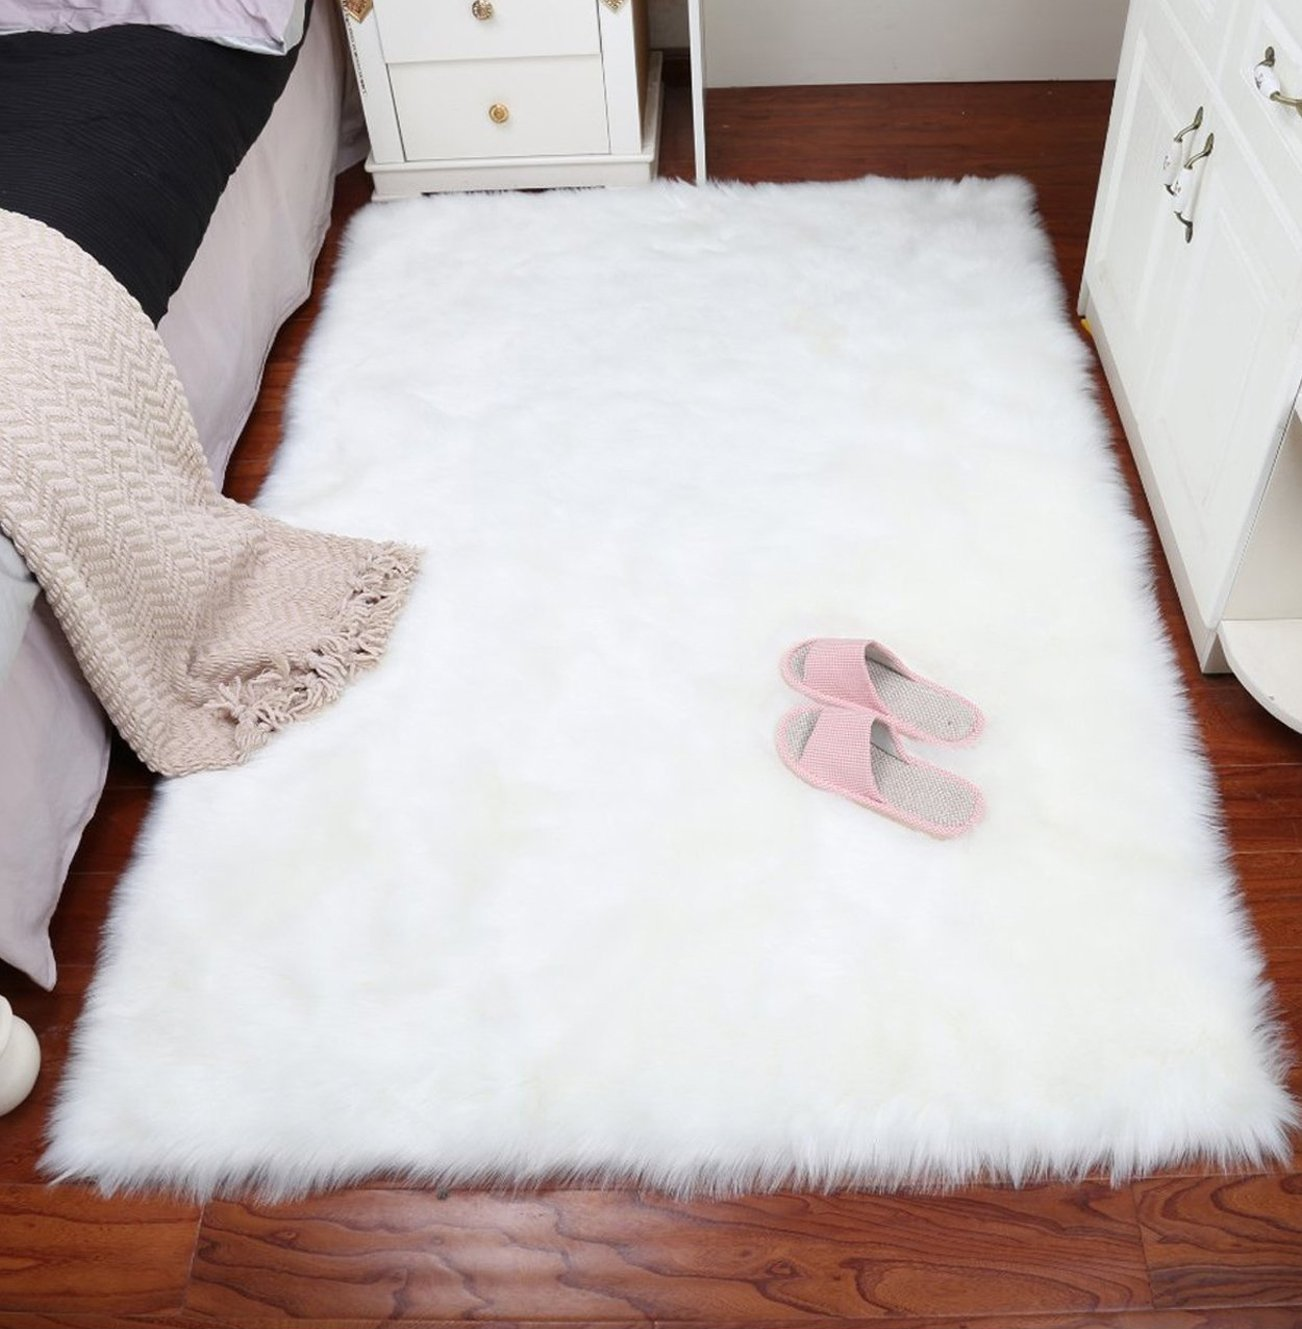 Gianco Ferro Faux Fur Sheepskin Area Rug Chair Cover Seat Pad Shaggy Area Rugs For Bedroom 2ftx3ft by Gianco Ferro